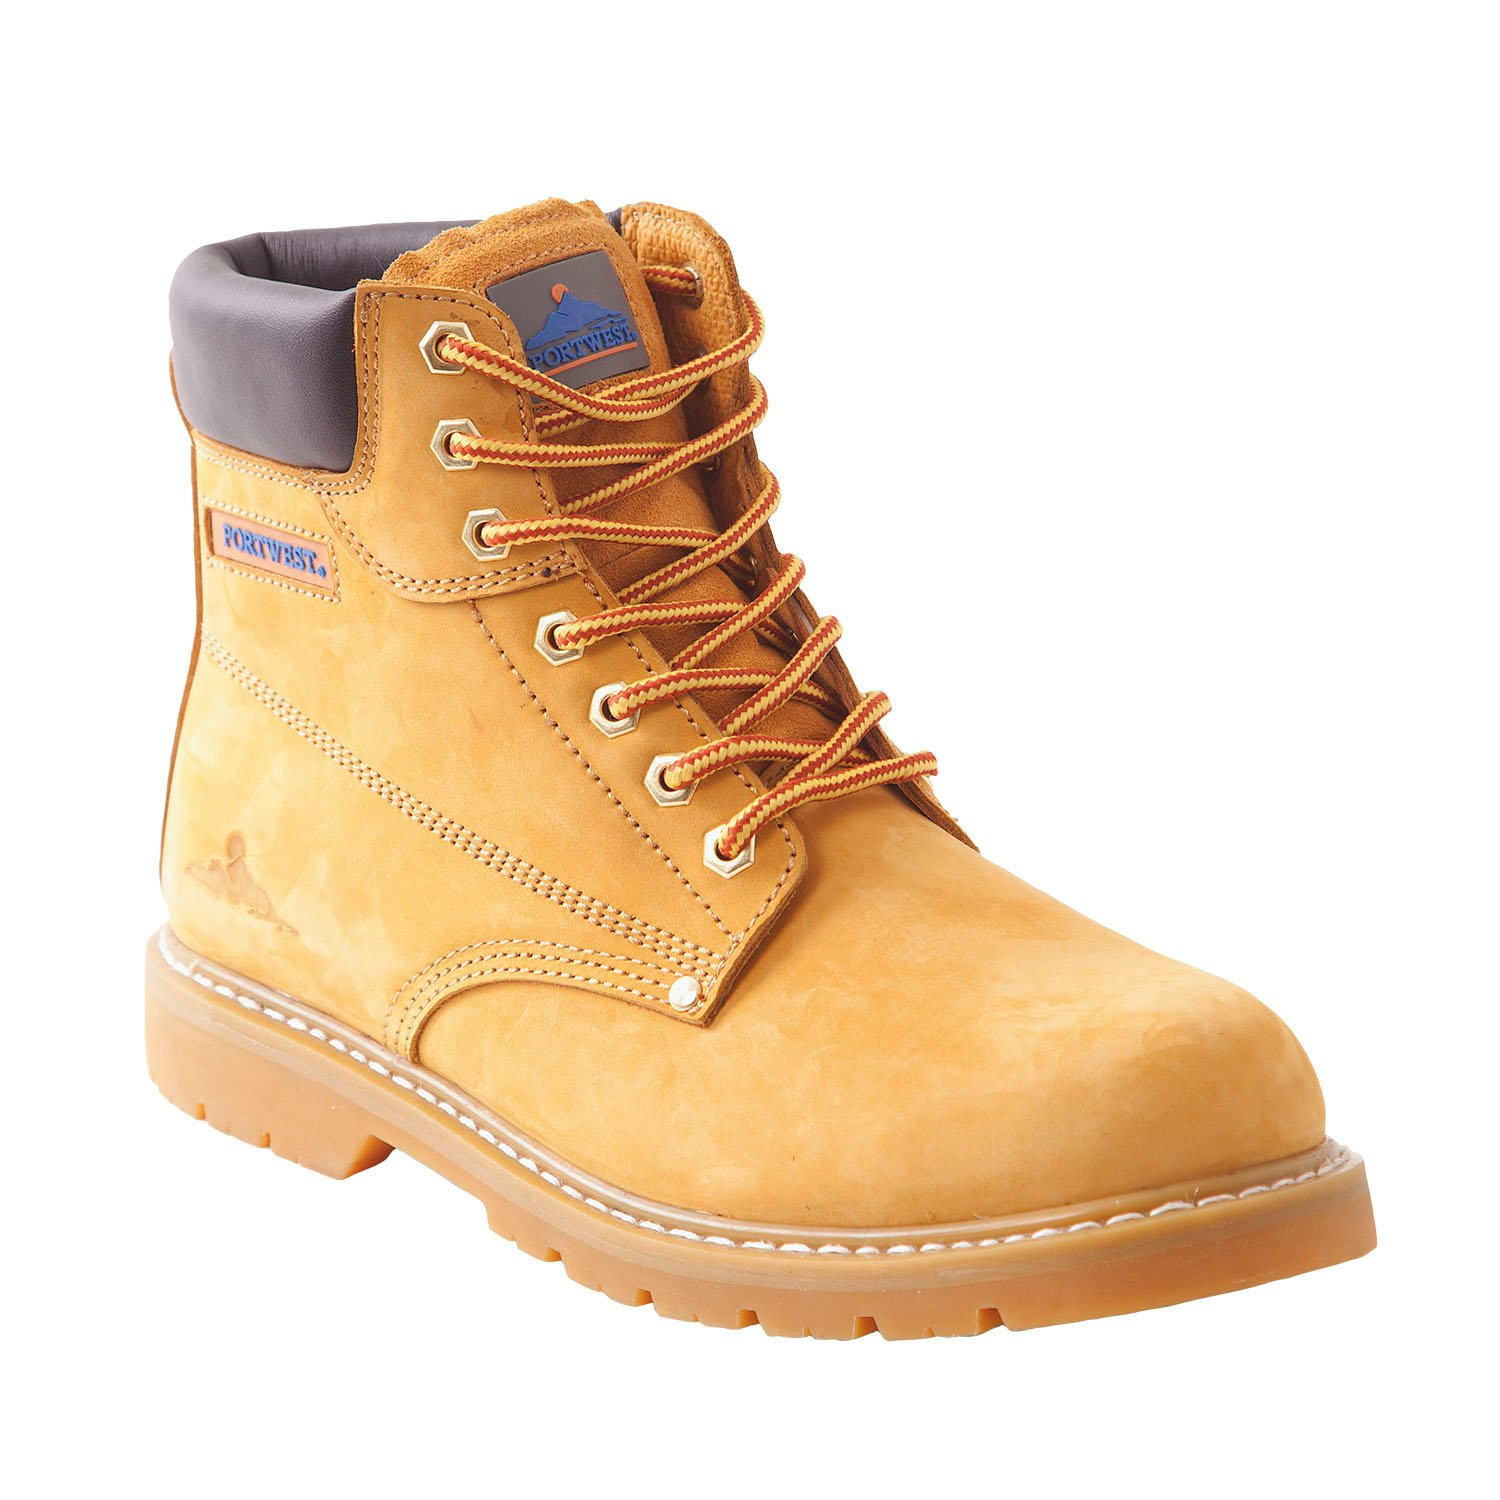 Portwest FW18 - Goodyear Welted arranque 39/6, color, talla 39 FW18HOR39